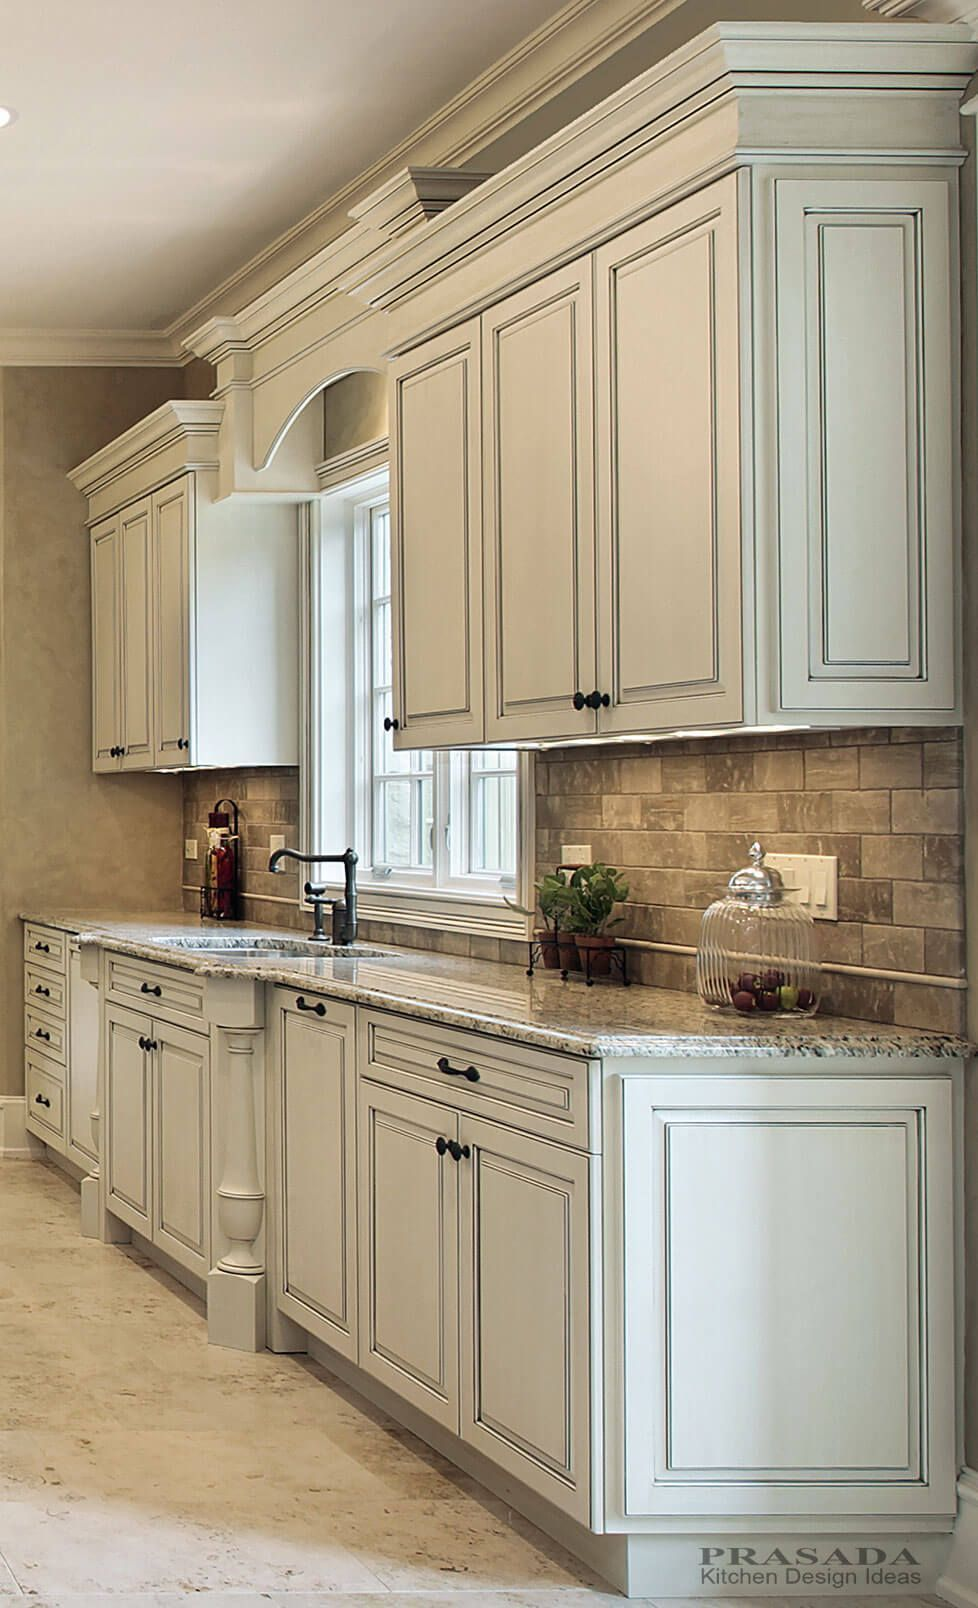 Weekend at the hamptons cabinets kitchenrenovation cabinet crown